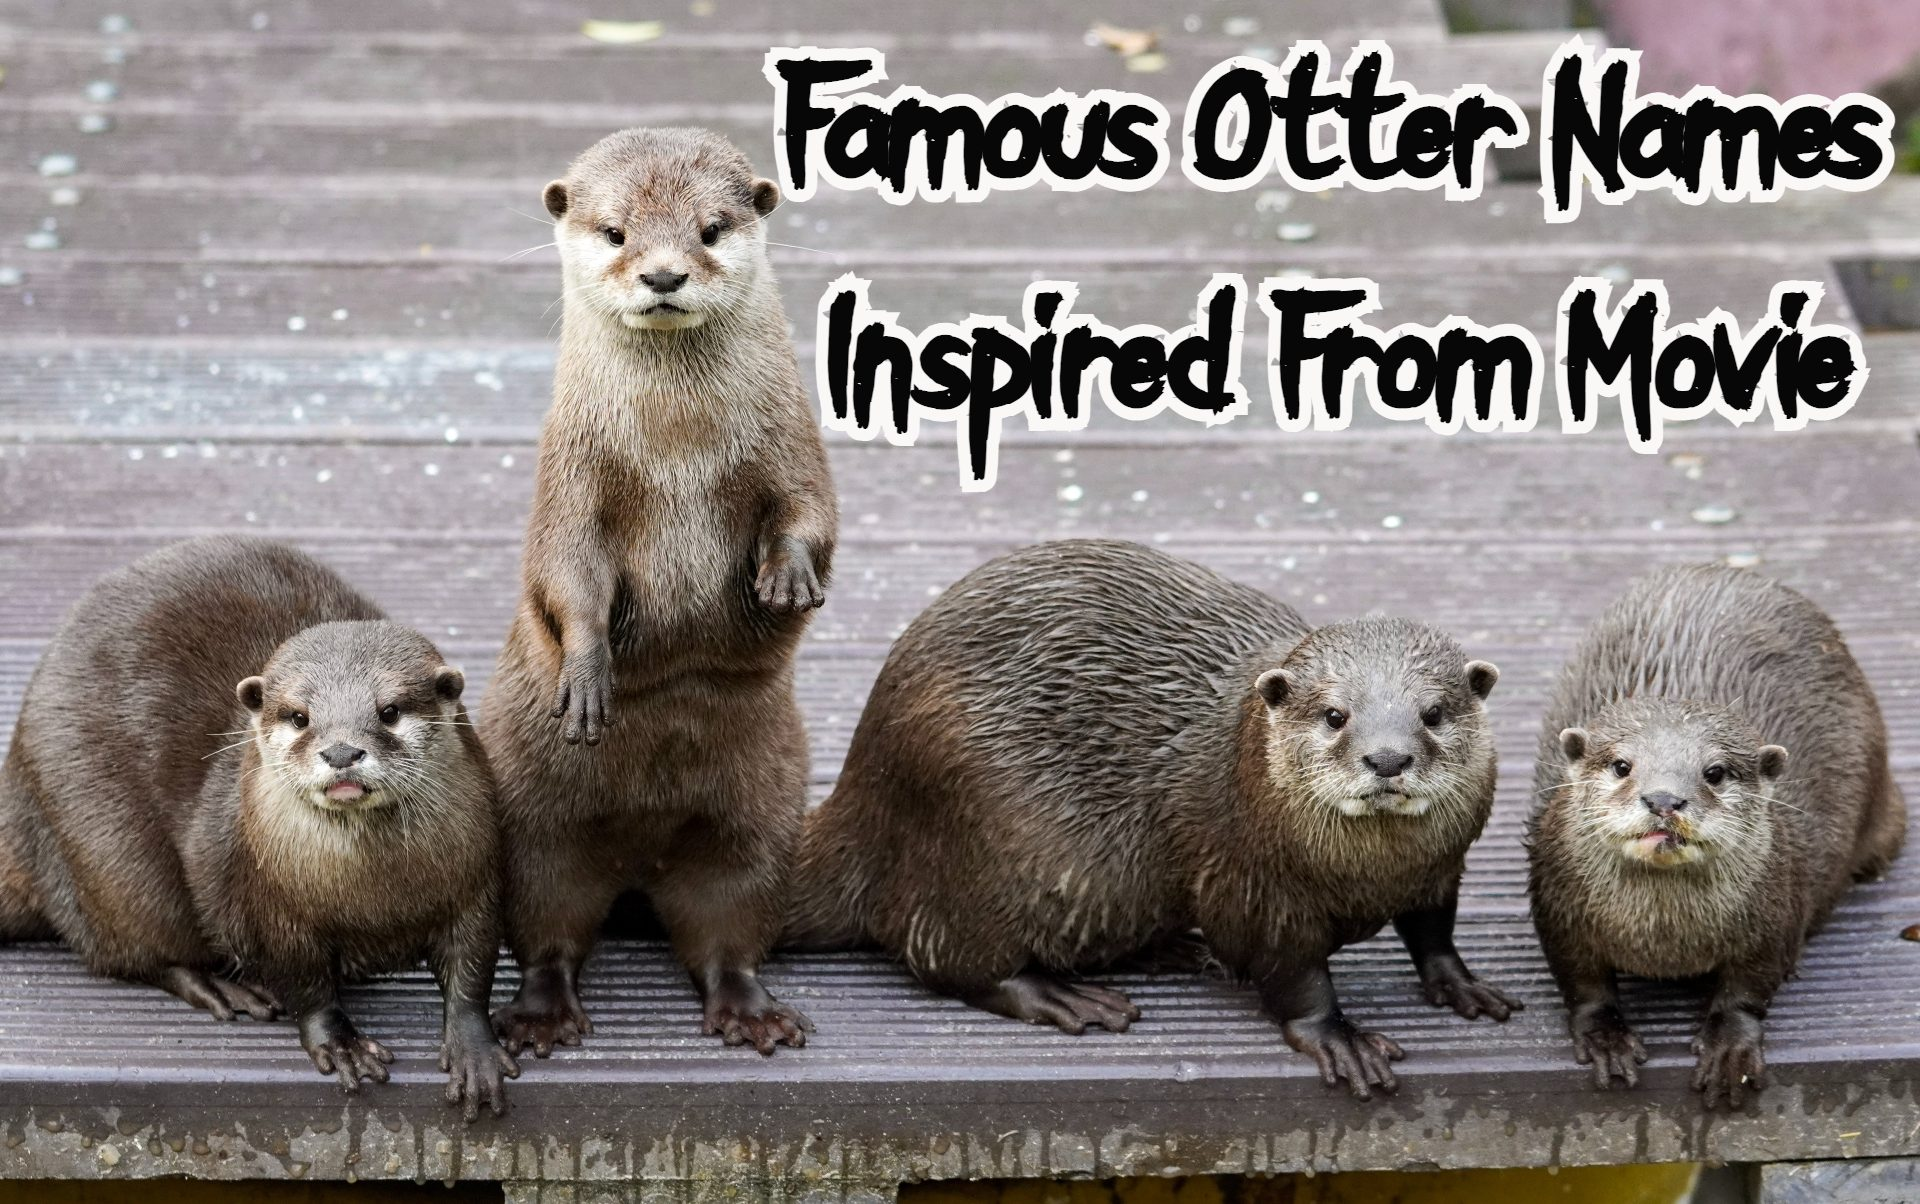 famous-otter-names-movie